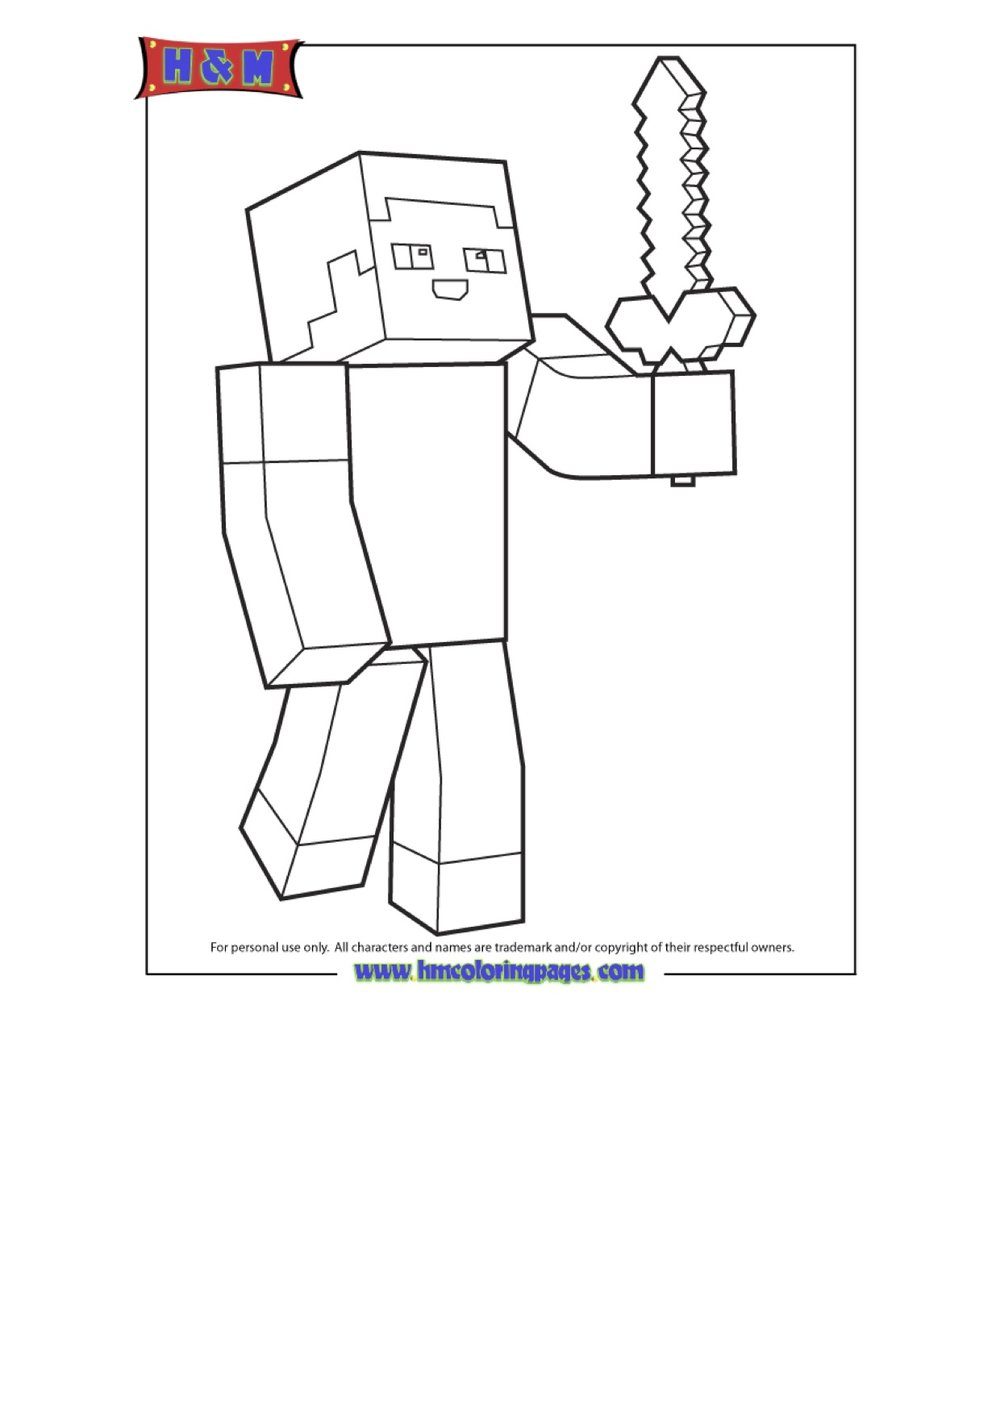 minecraft-person-holding-sword-coloring-page pic.jpg